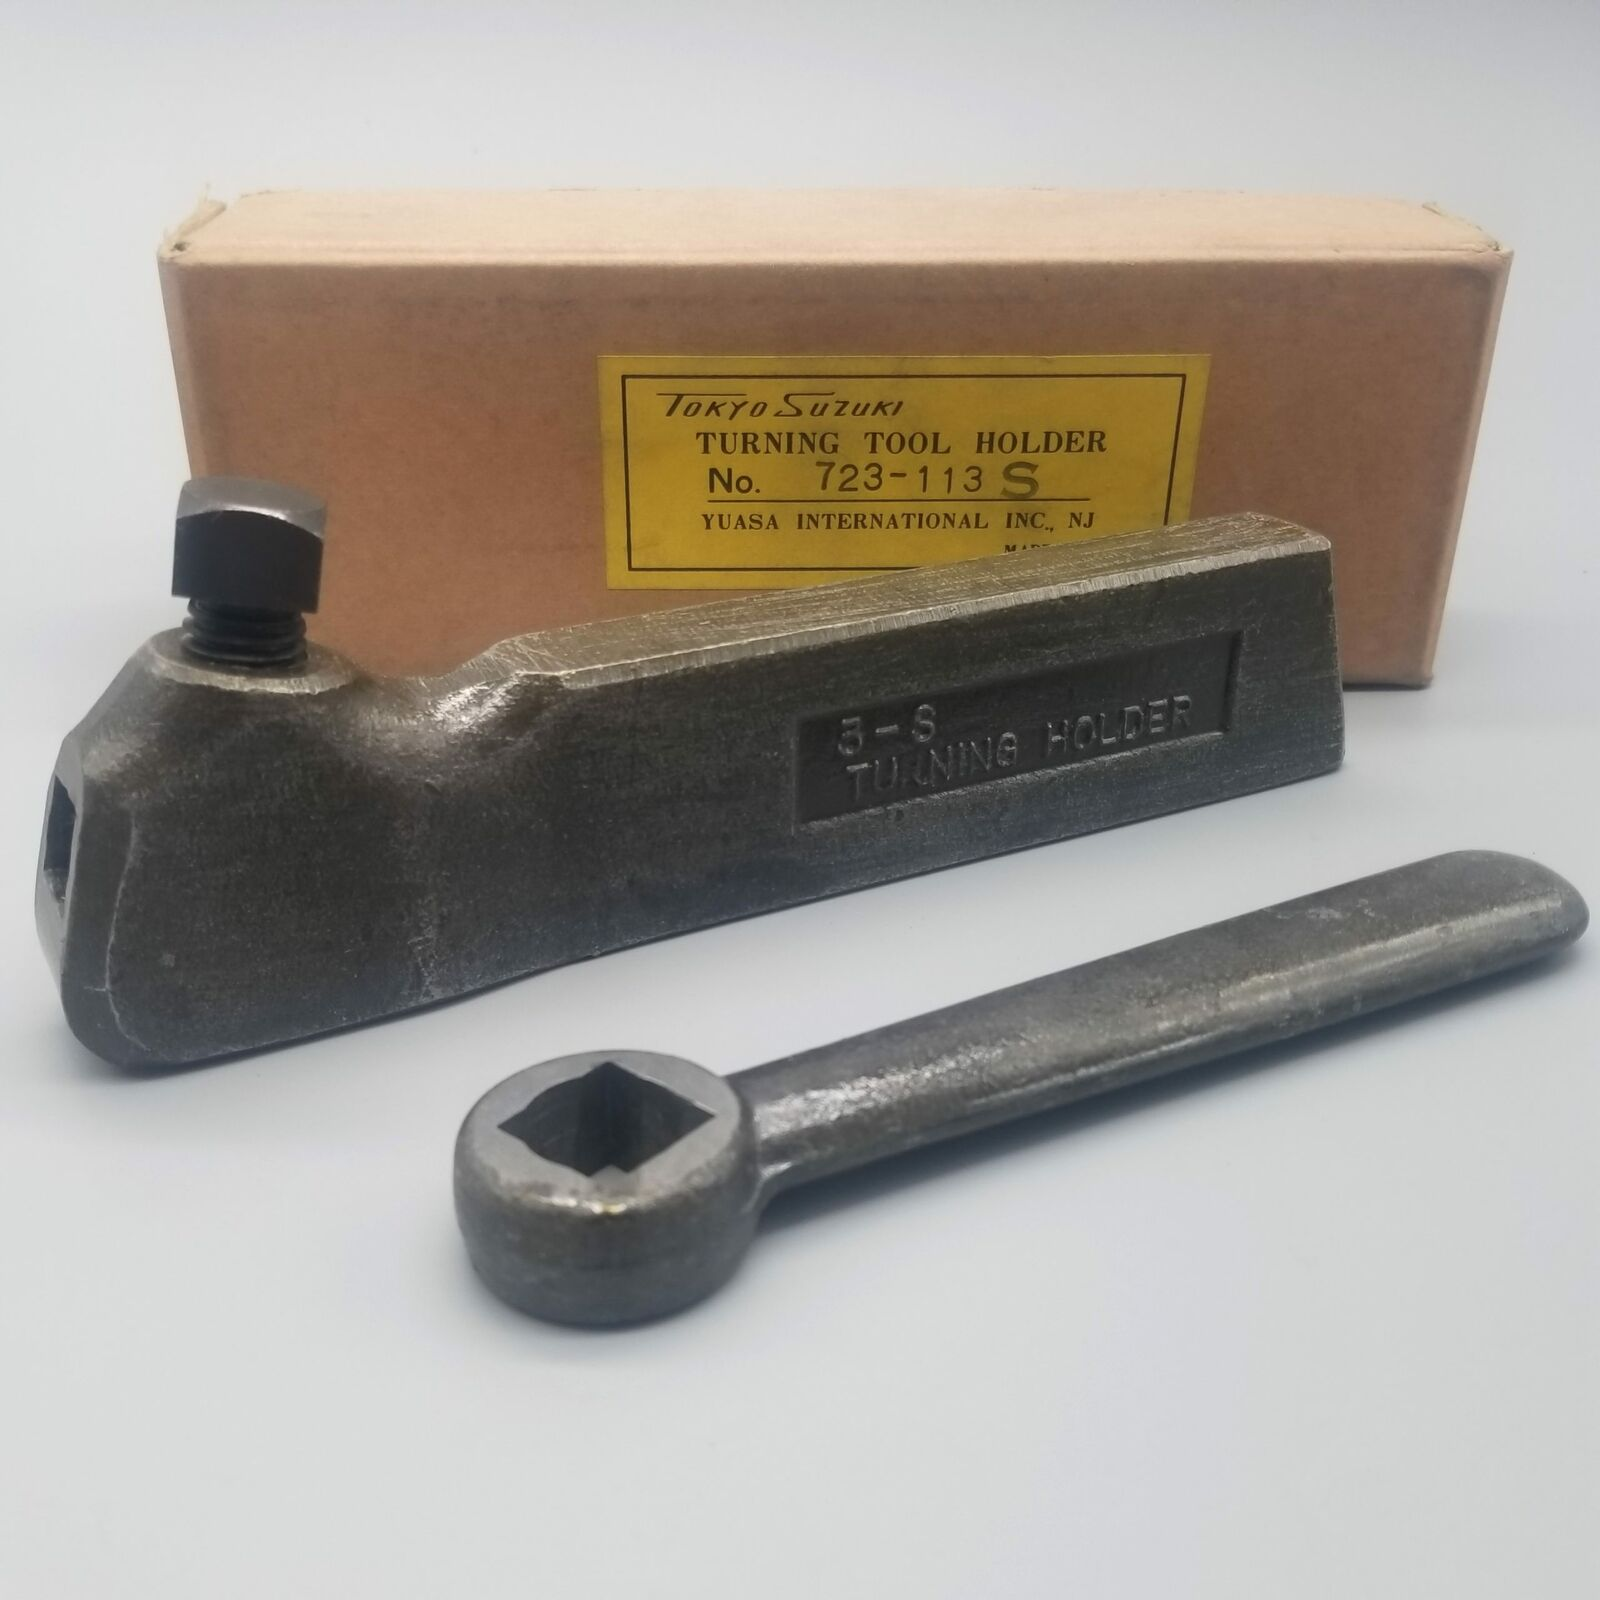 Yuasa Lathe Turning Tool Holder, 3-S Straight